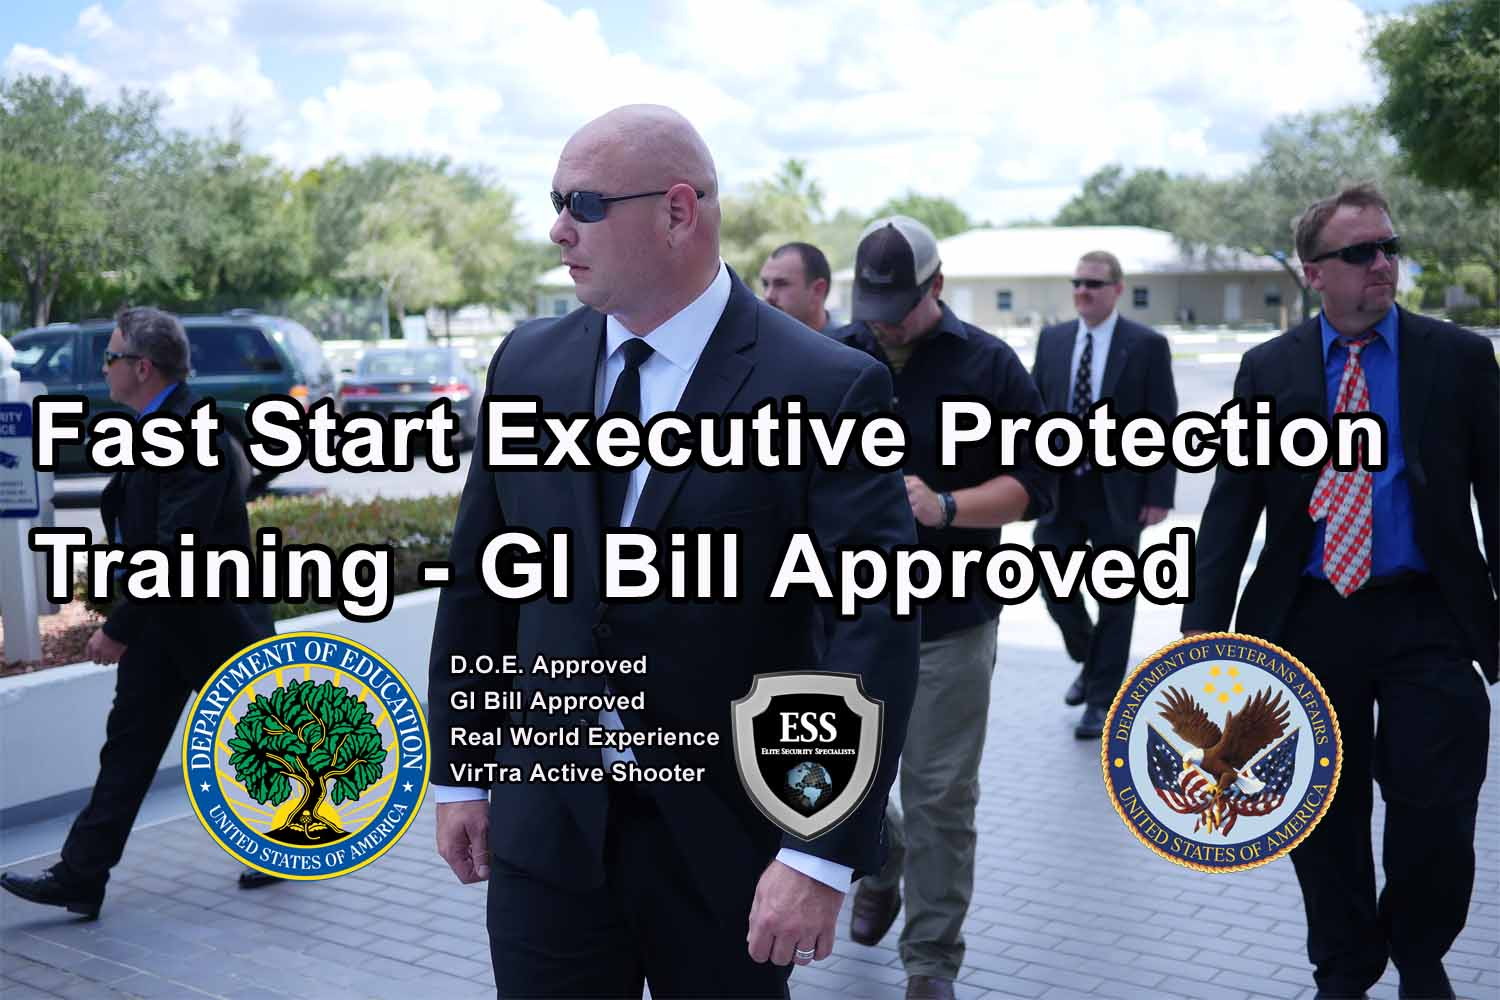 GI Bill Approved Bodyguard Training - Arkansas 3 day